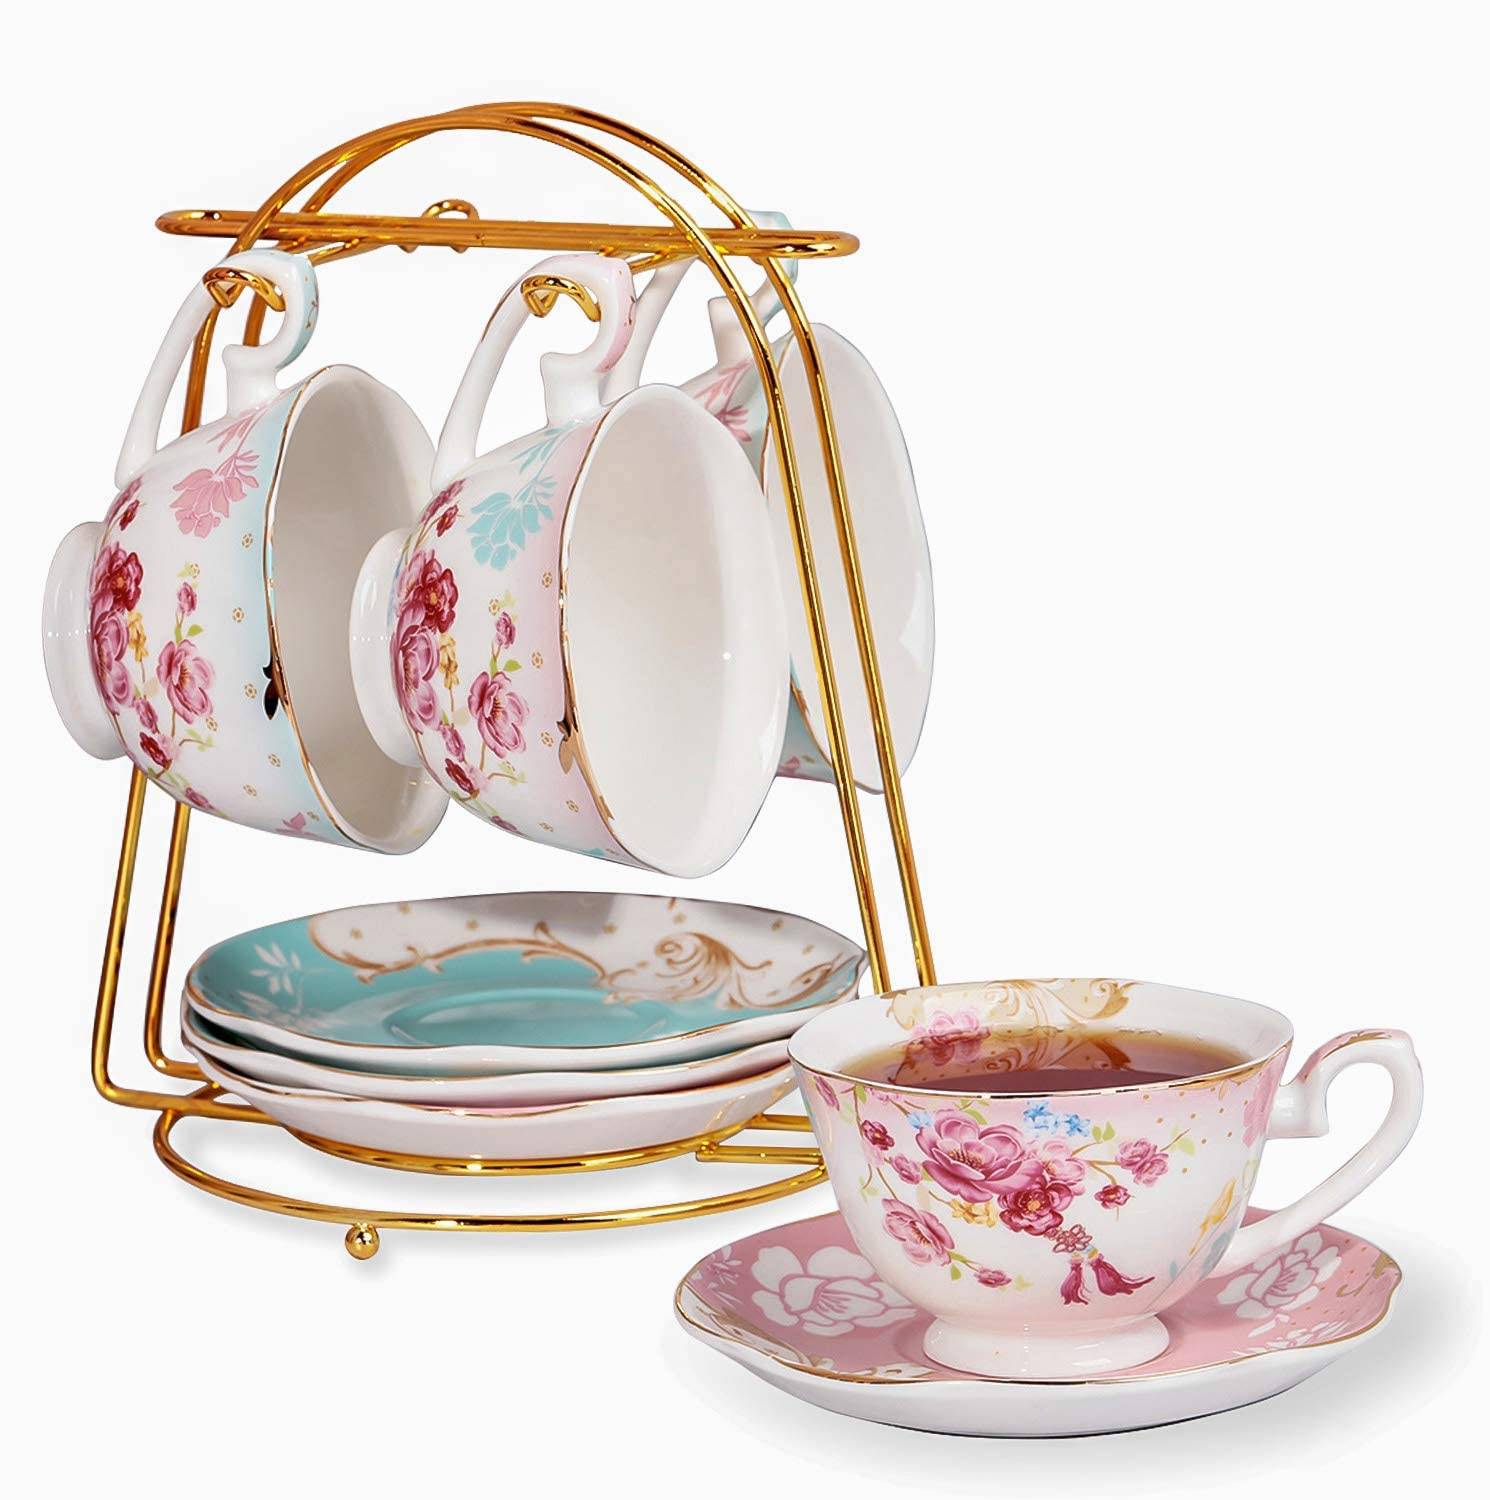 Emma's Espresso Cups with Saucers Set with Cup Holder 6 oz,Cups& Saucer Service for 4,Porcelain Teacup for Tea Party,Tea Gift Sets,Cup Set